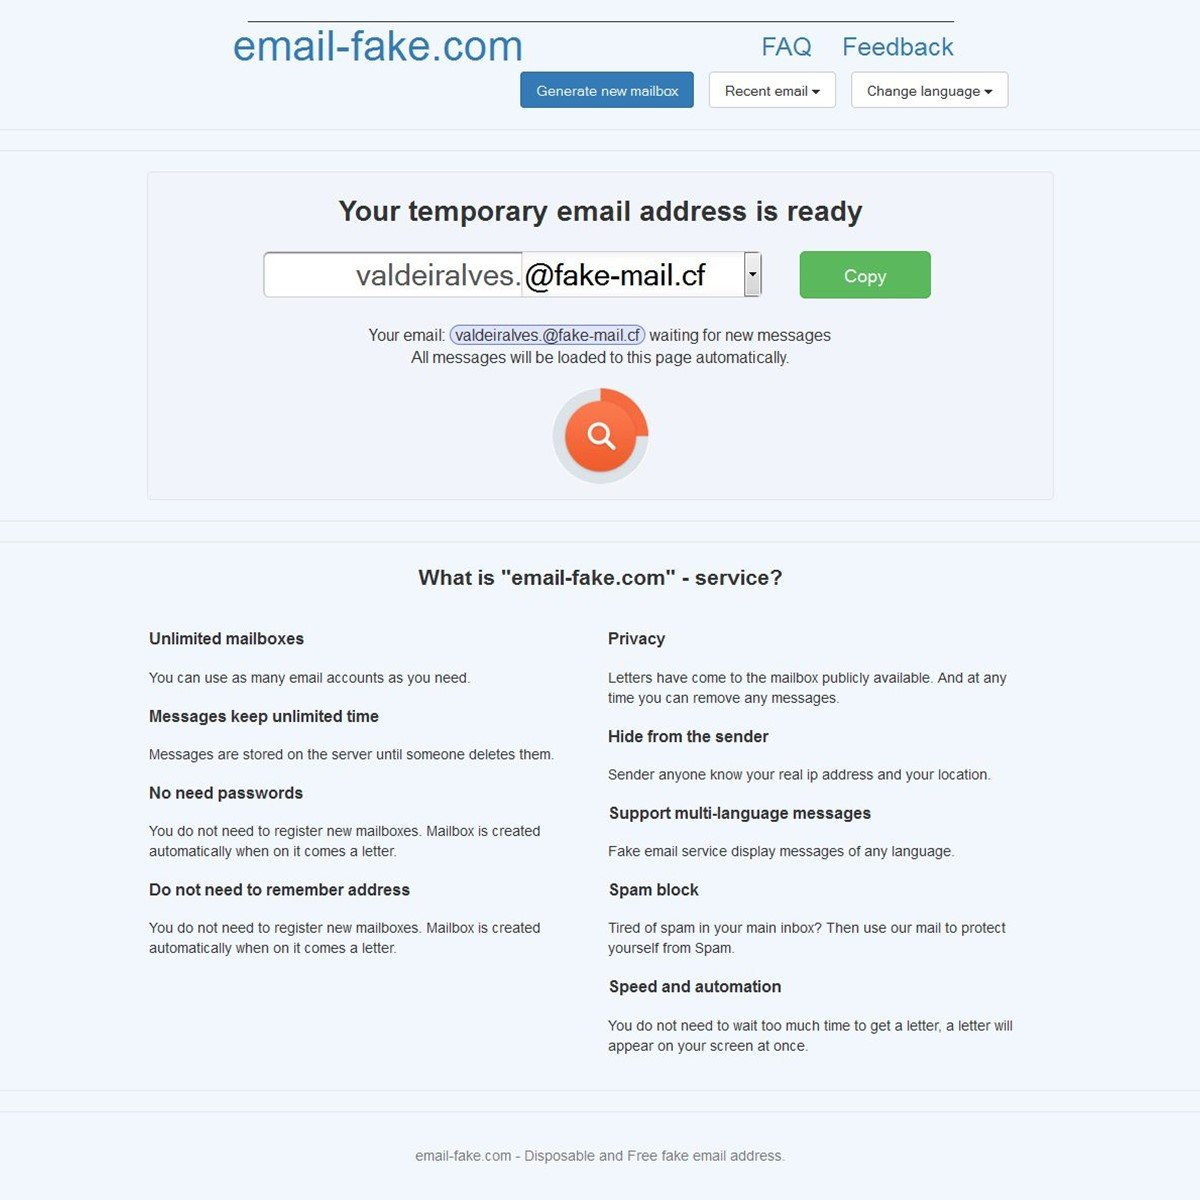 email-fake com Alternatives and Similar Websites and Apps